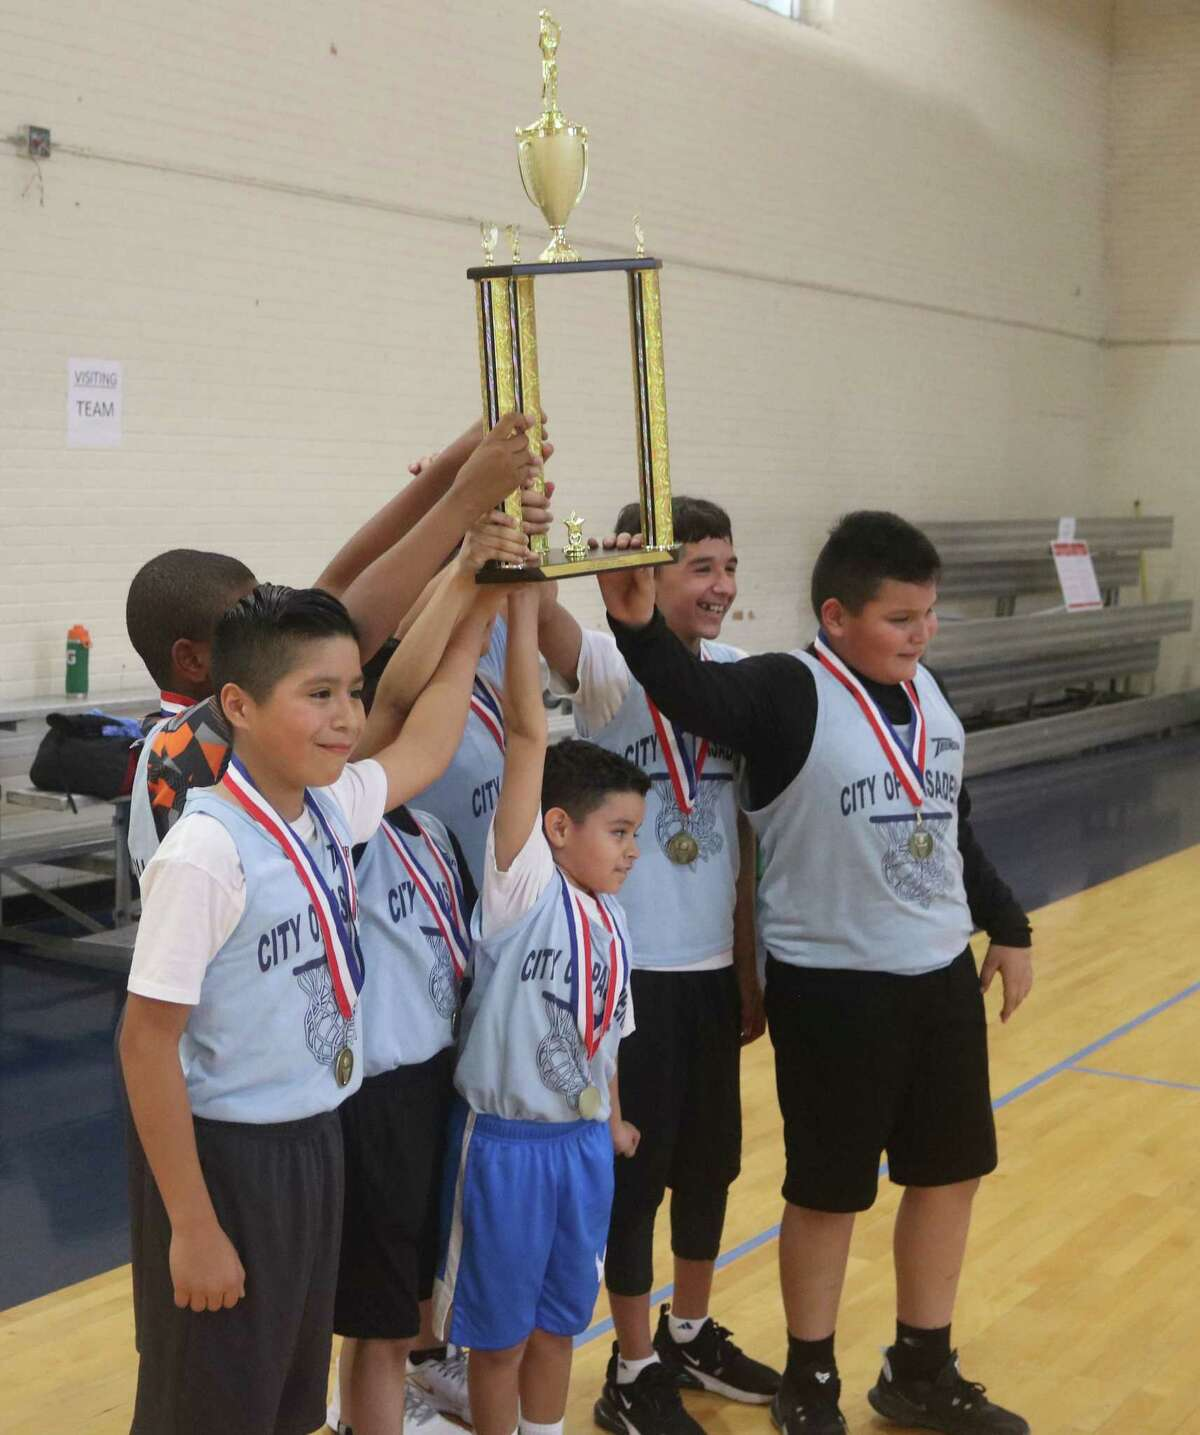 The Thunder celebrate their city championship in the 9 and 10s division Saturday, following a hard-fought 17-14 win at PAL Gym.